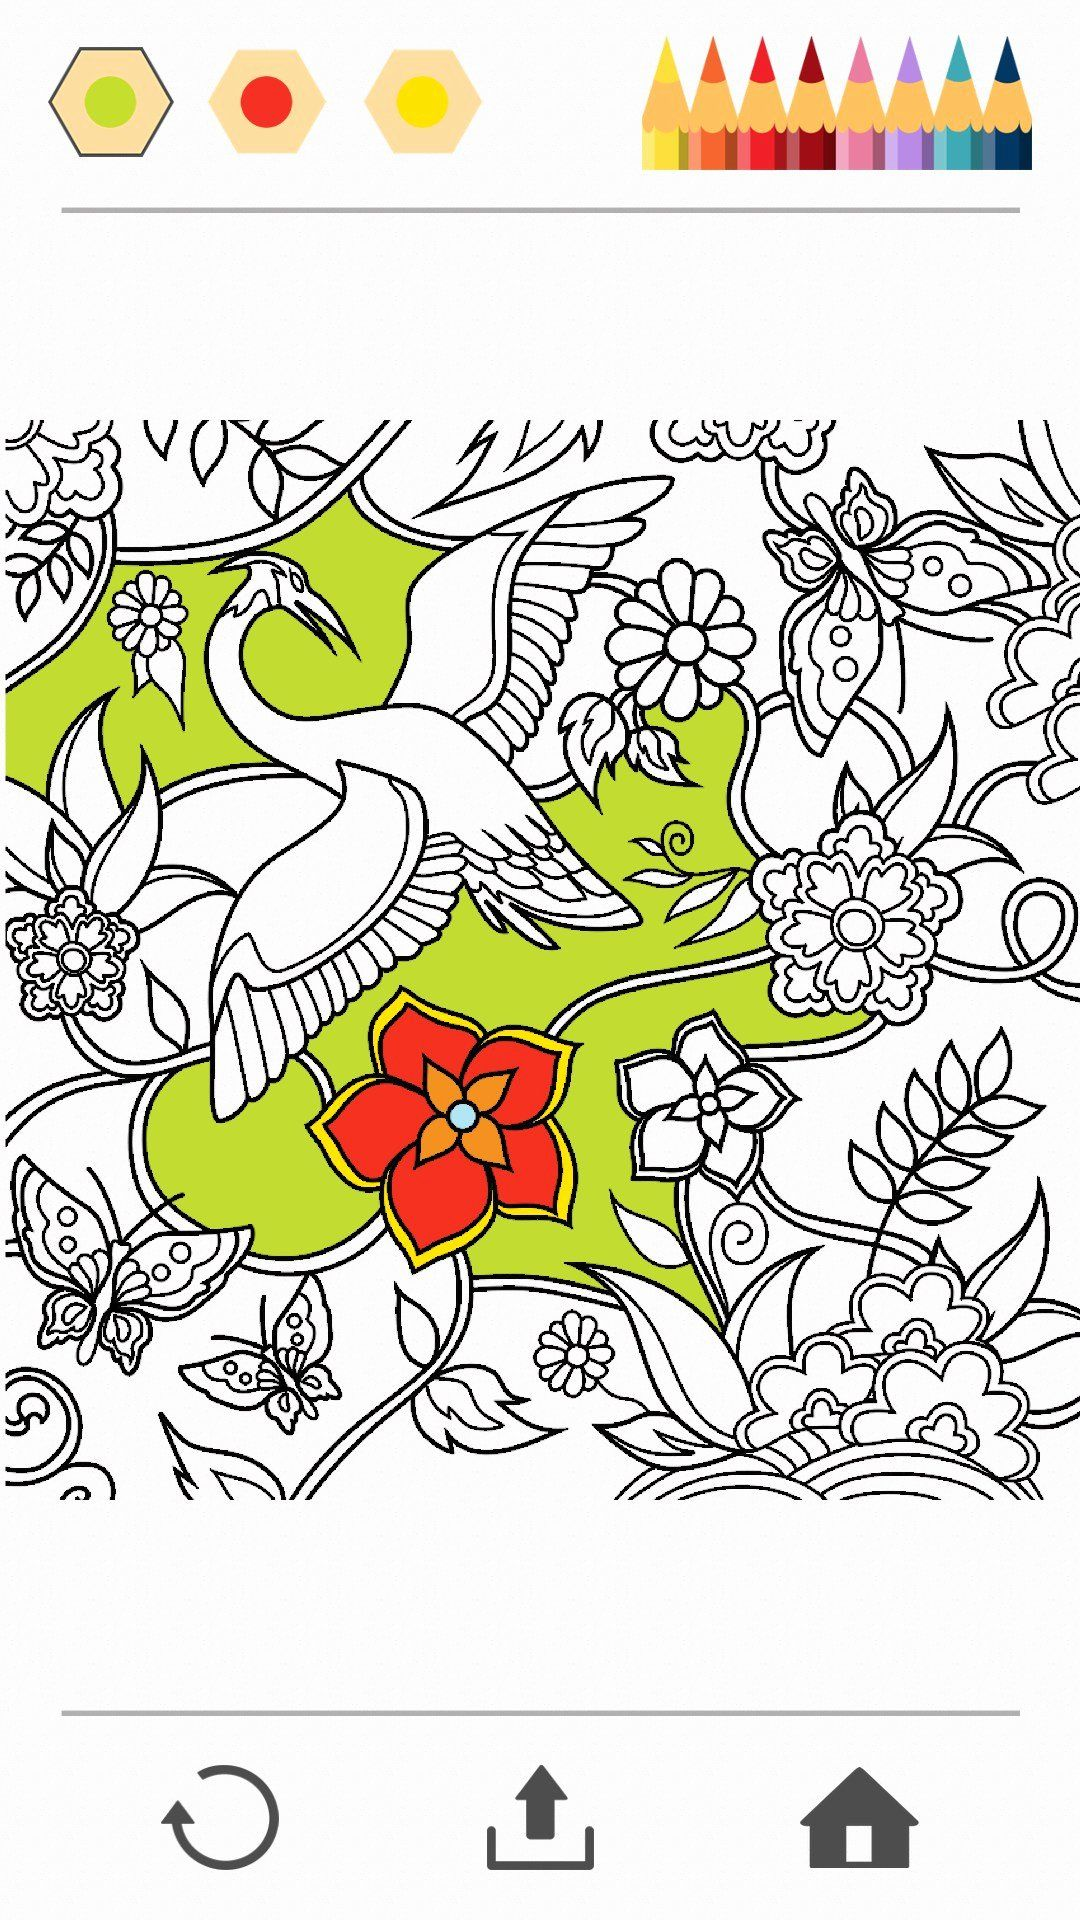 Colorfy Coloring Book Free : colorfy, coloring, Colorfy, Coloring, Unique, Programy, Android, Books,, Wedding, Pages,, Pages